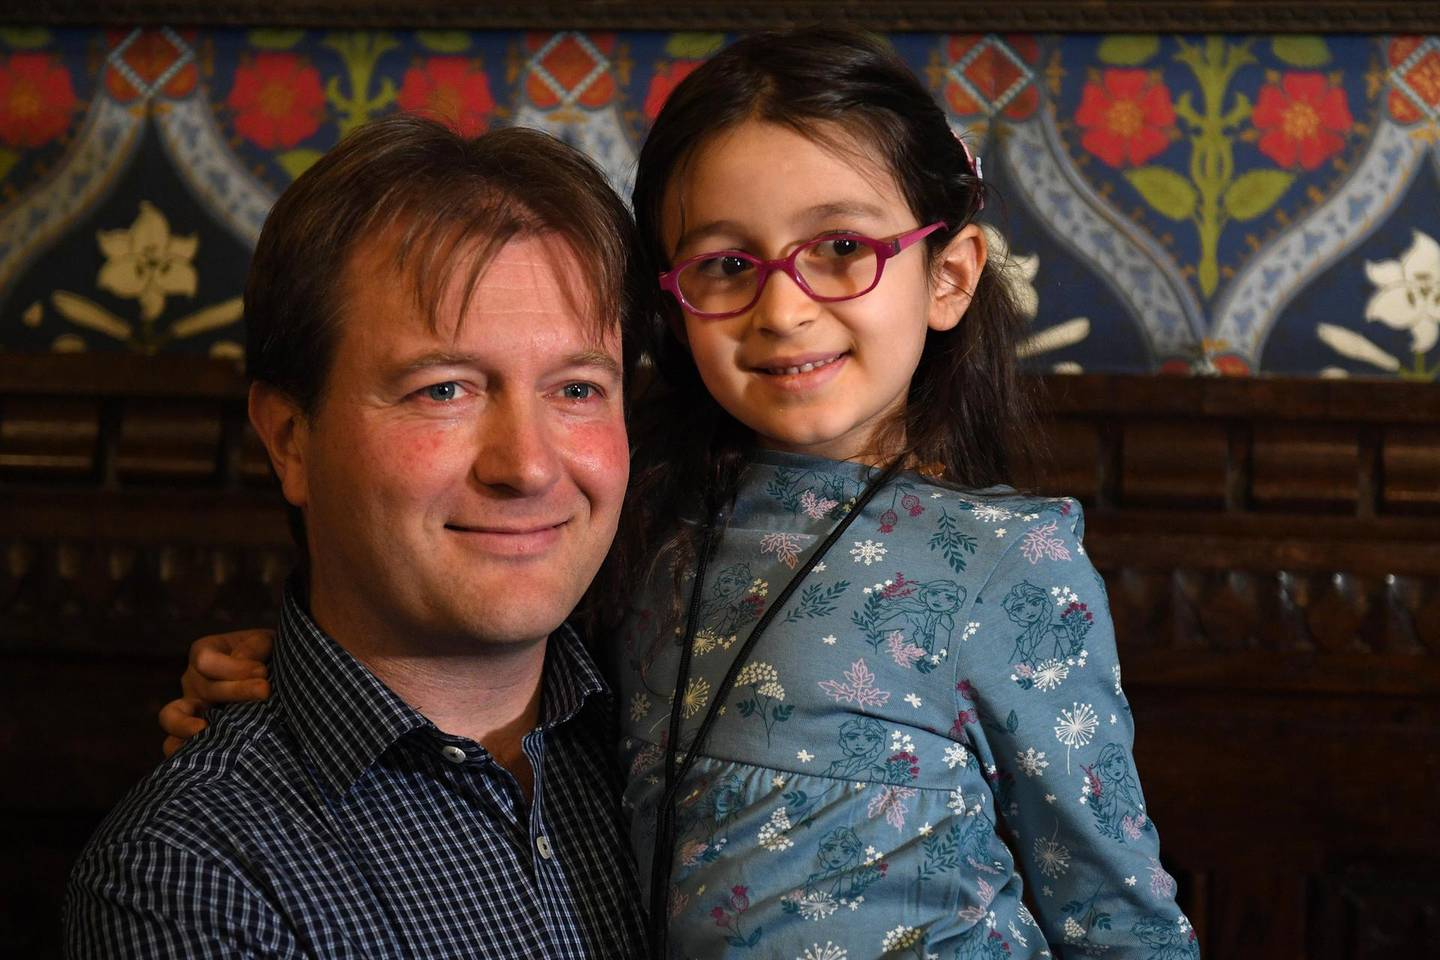 """Richard Ratcliffe, husband of British-Iranian aid worker Nazanin Zaghari-Ratcliffe jailed in Tehran since 2016, holds his daughter Gabriella during a news conference in London, on October 11, 2019. - The five-year-old daughter of a British-Iranian woman jailed in Tehran since 2016 has arrived back in Britain, her father said Friday, after making the """"bittersweet"""" decision to bring her home. (Photo by DANIEL LEAL-OLIVAS / AFP)"""